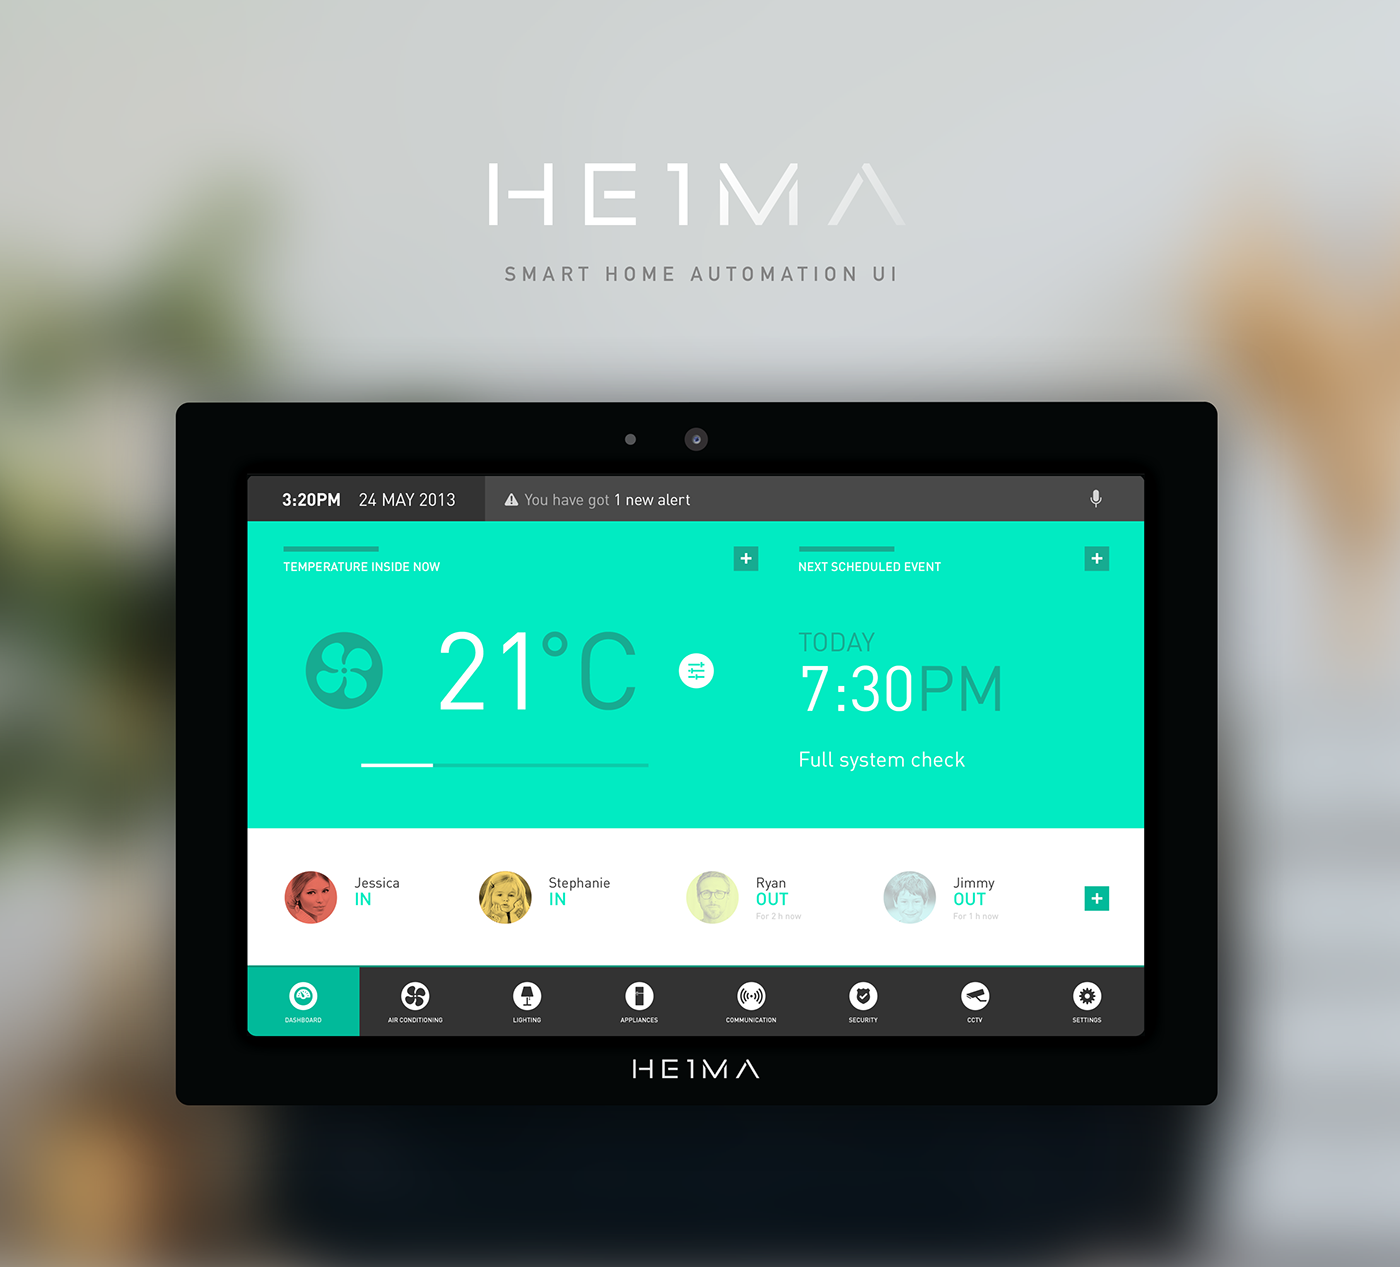 HEIMA. Smart Home Automation UI.